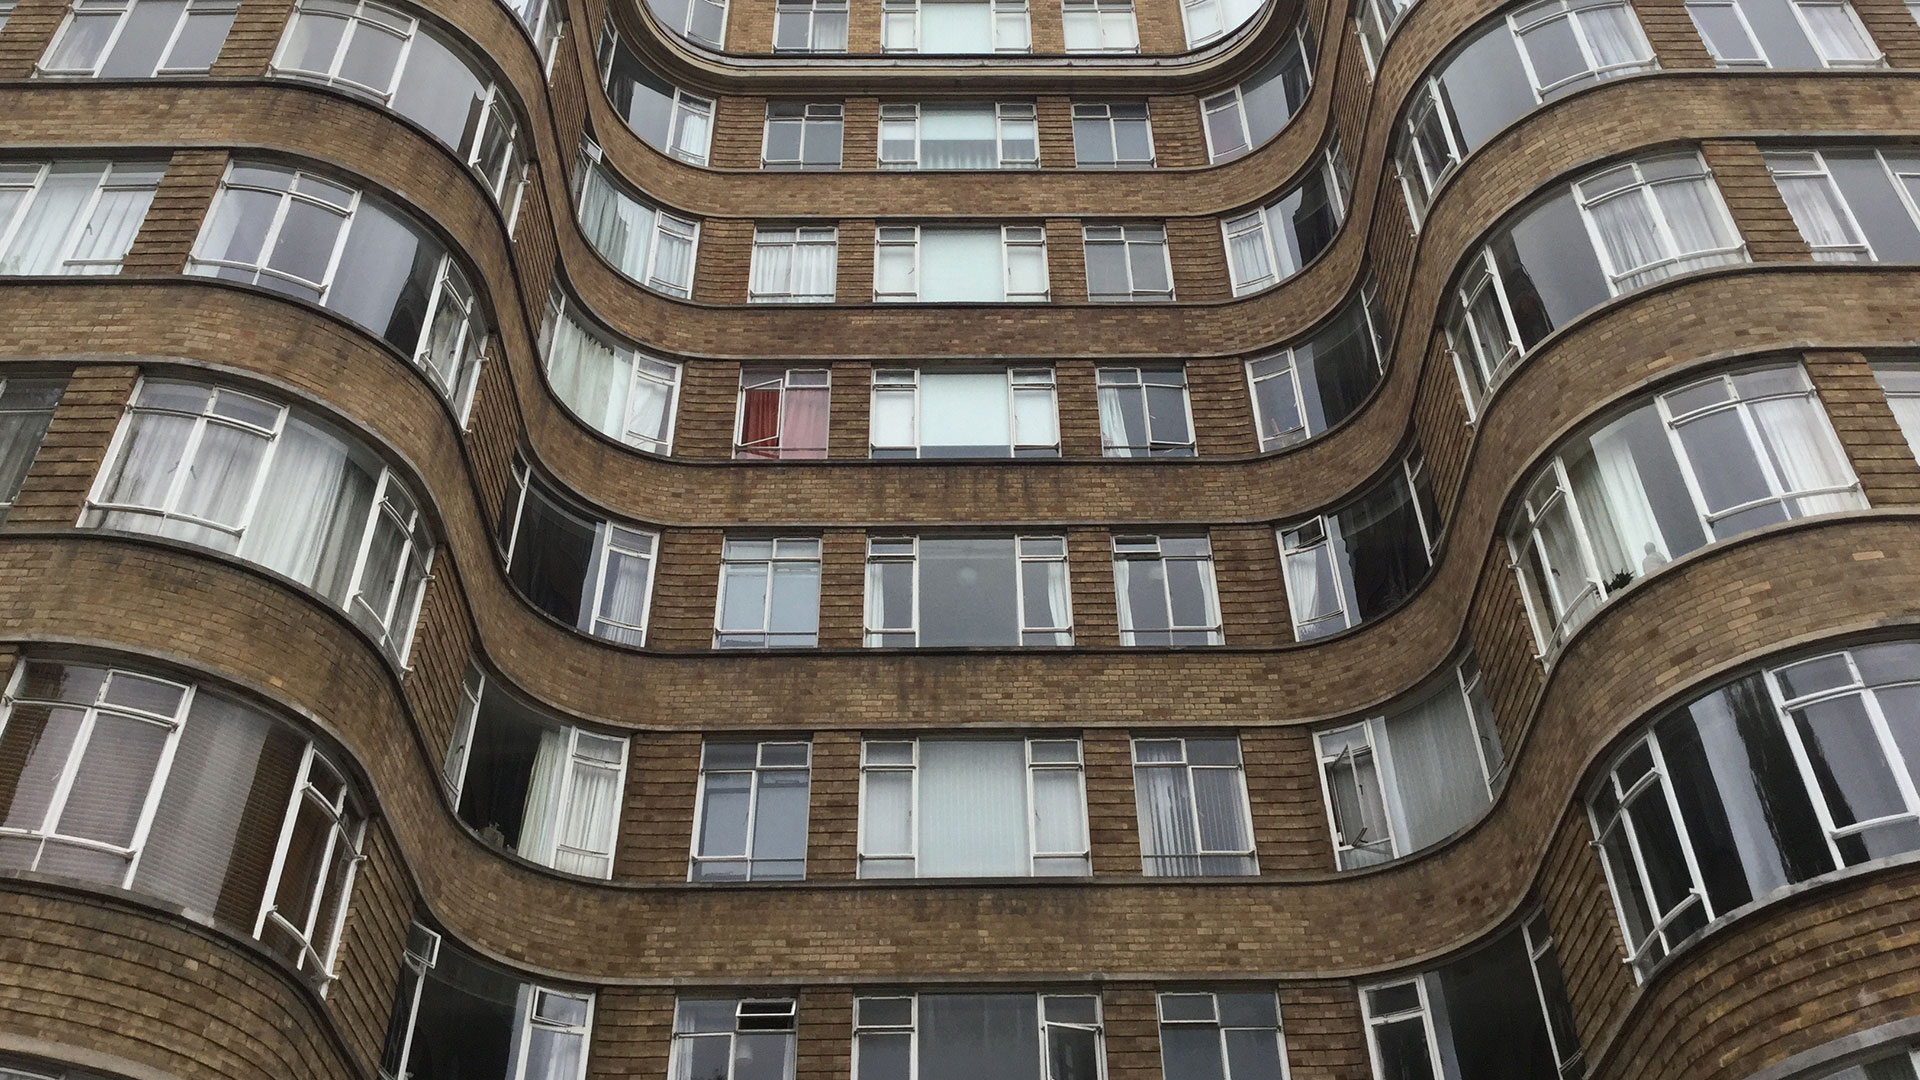 Florin Court (Poirot's TV show apartment building) | 7 Offbeat Things to Check Out in London